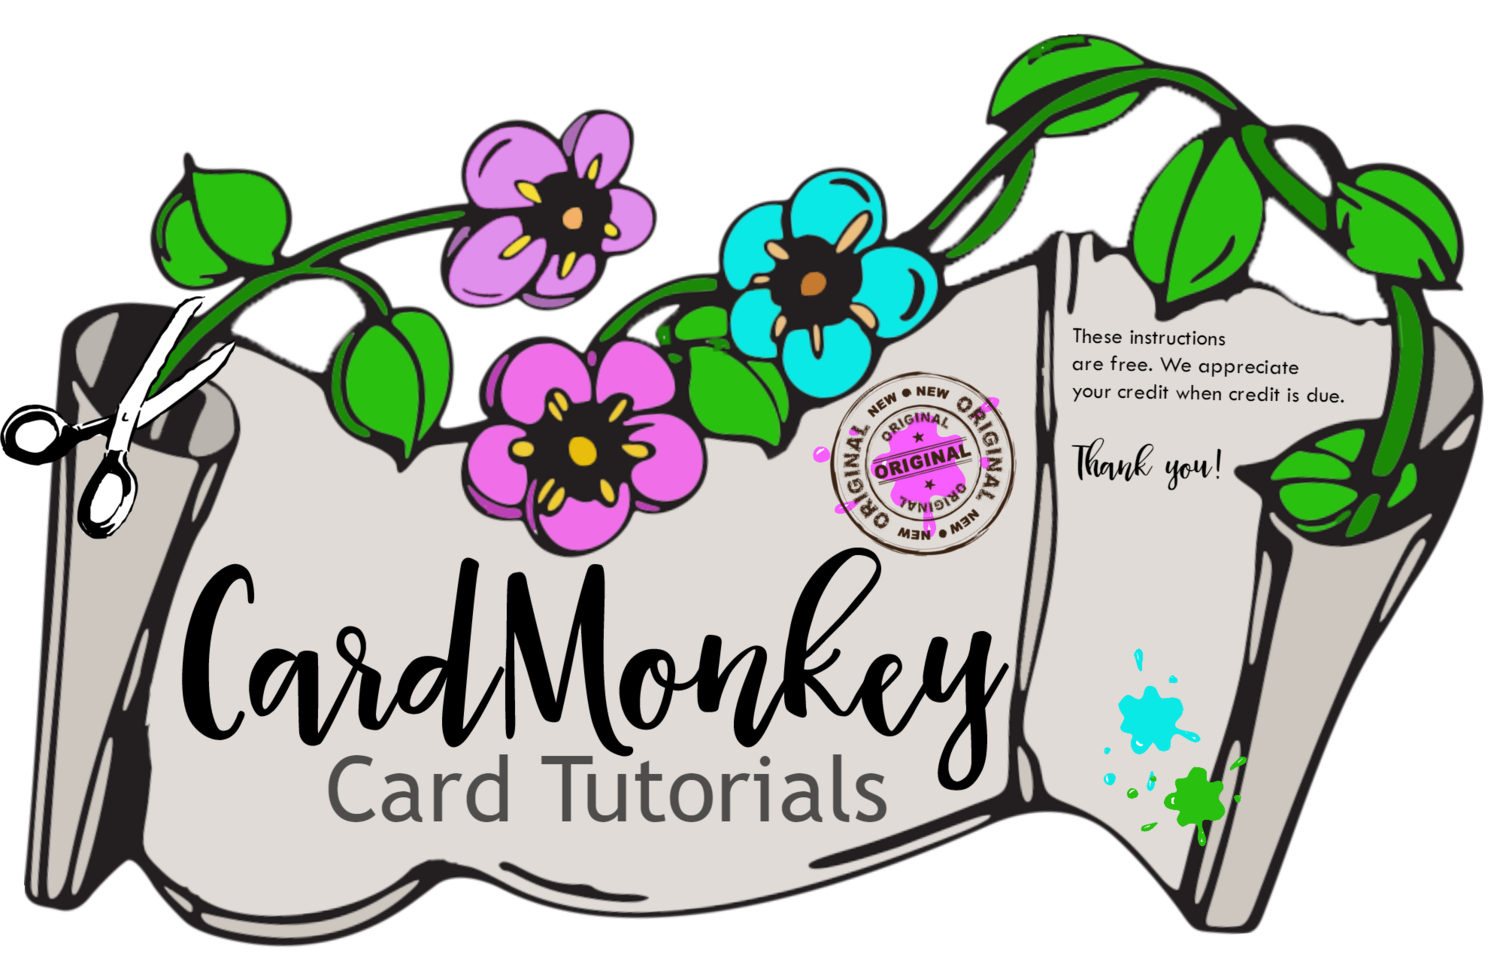 CardMonkey's Card Tutorials